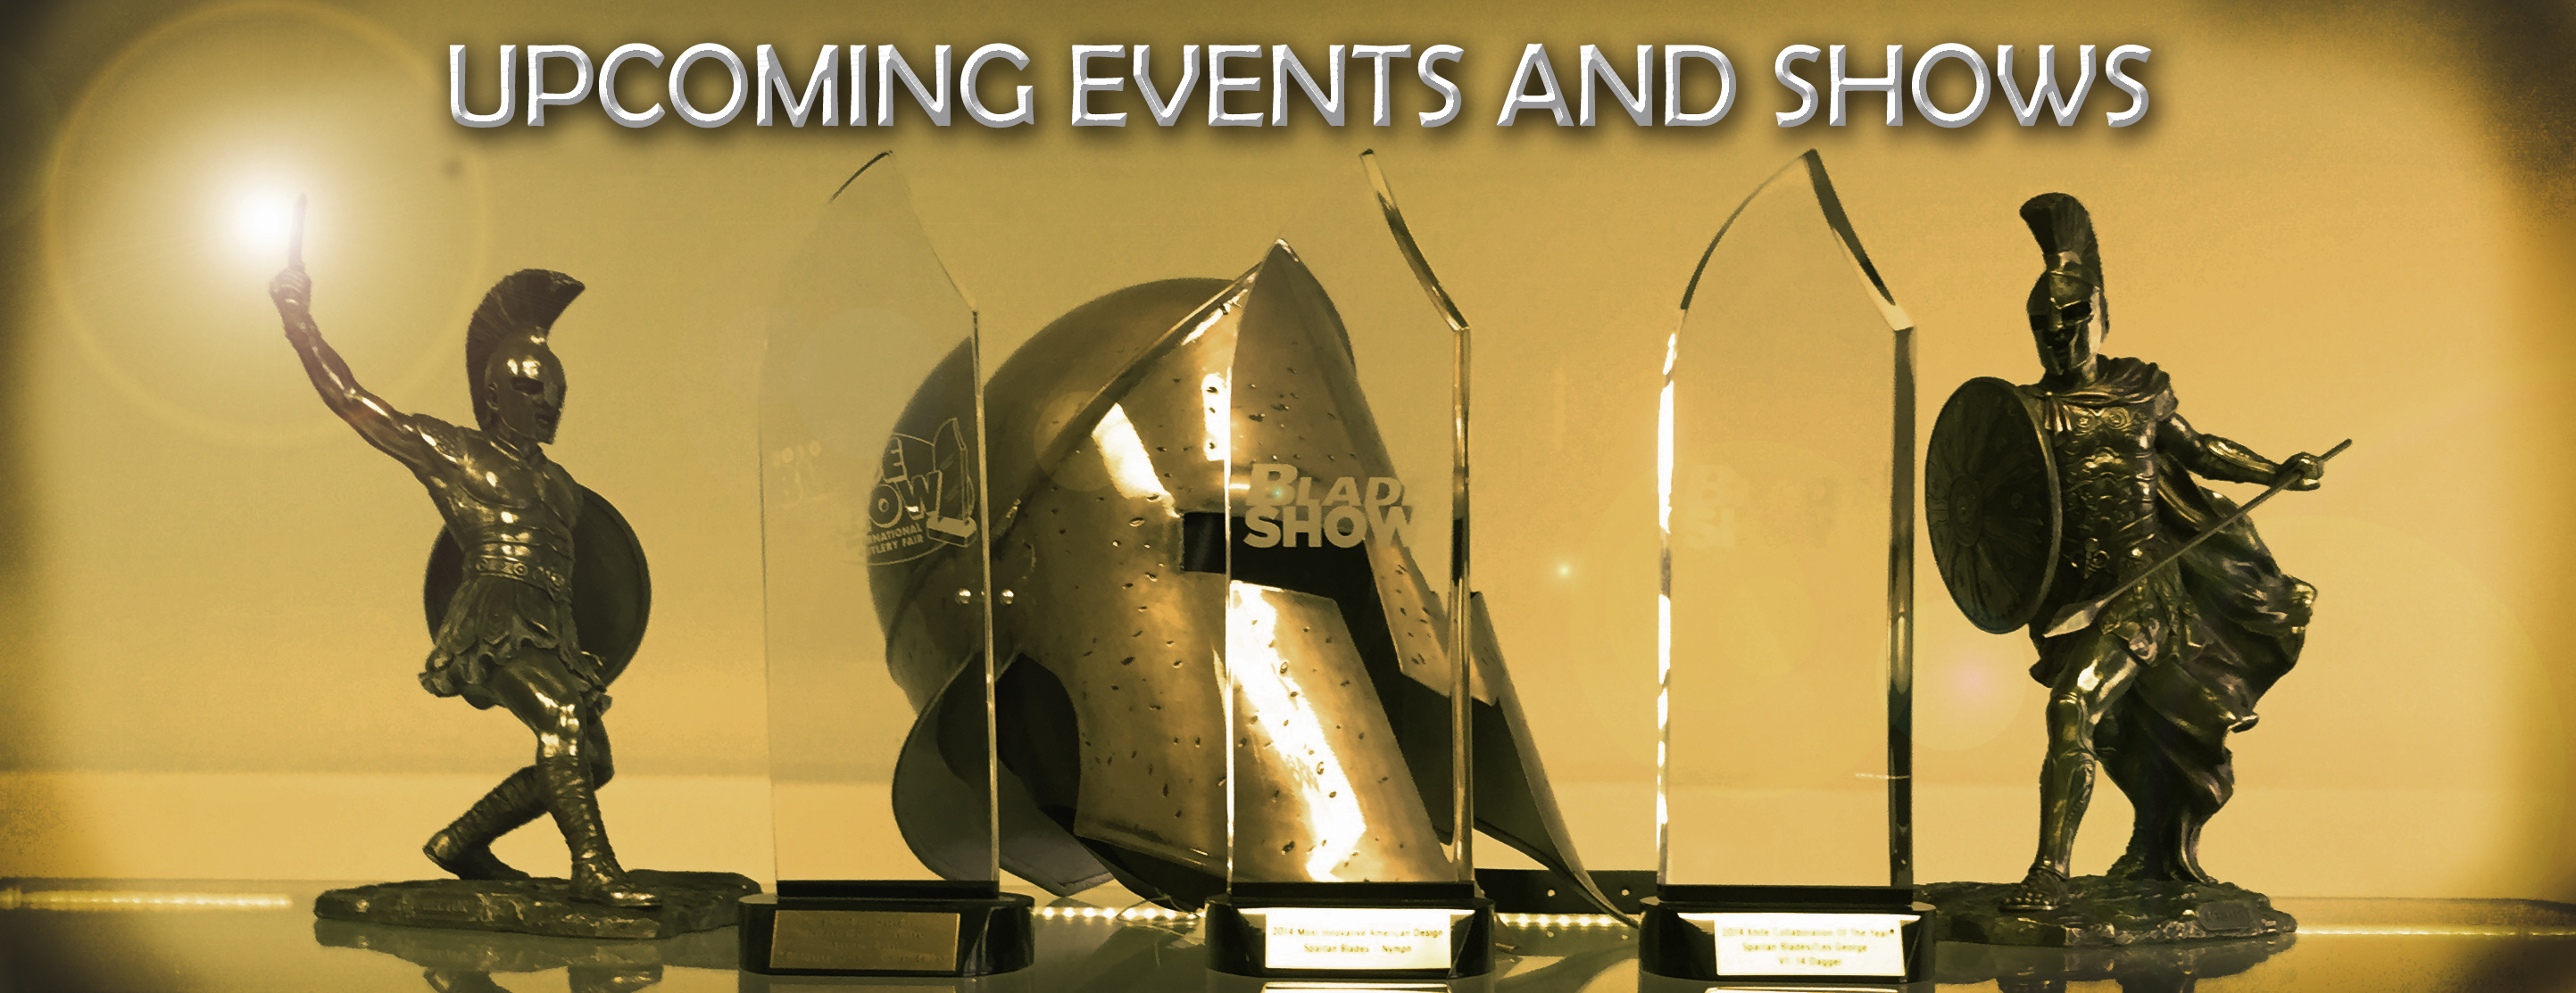 spartan-blades-shows-and-events.jpg